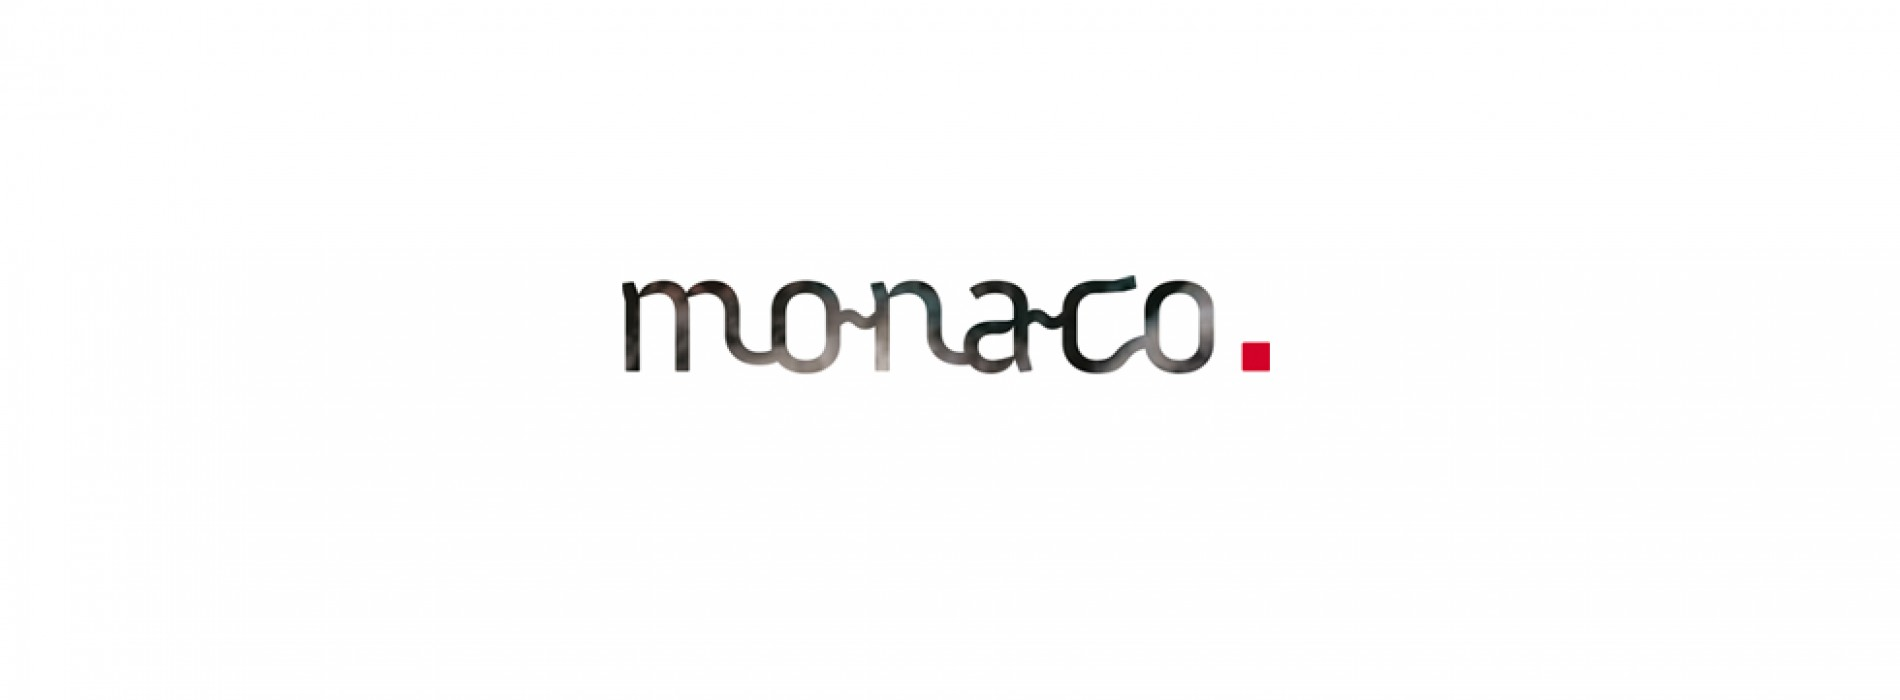 Monaco tourism entices Indian travellers with top end tourism options